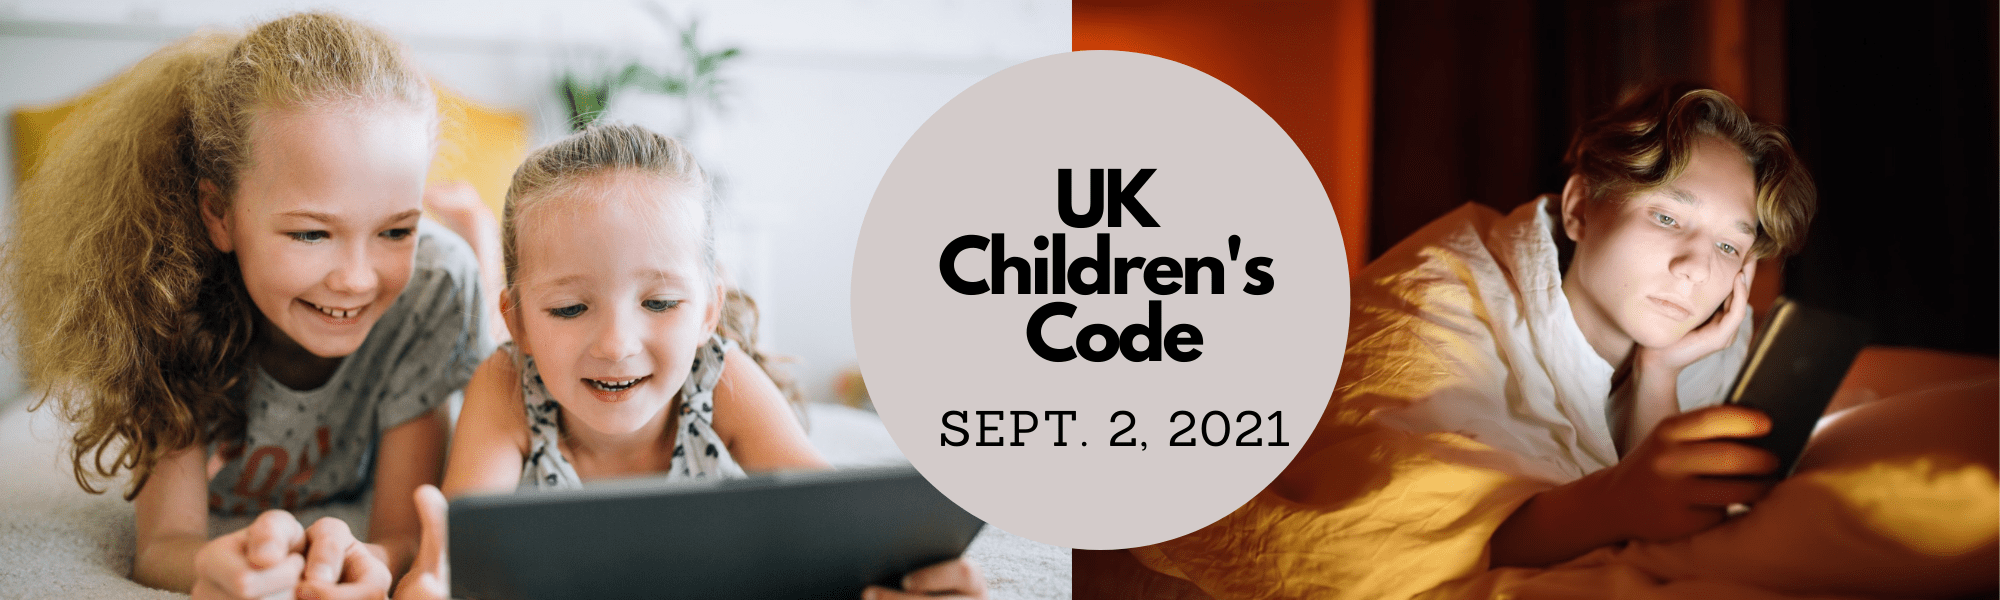 ICO's Child Protection Rules Take Effect Sept. 2, 2021. Are You Ready?